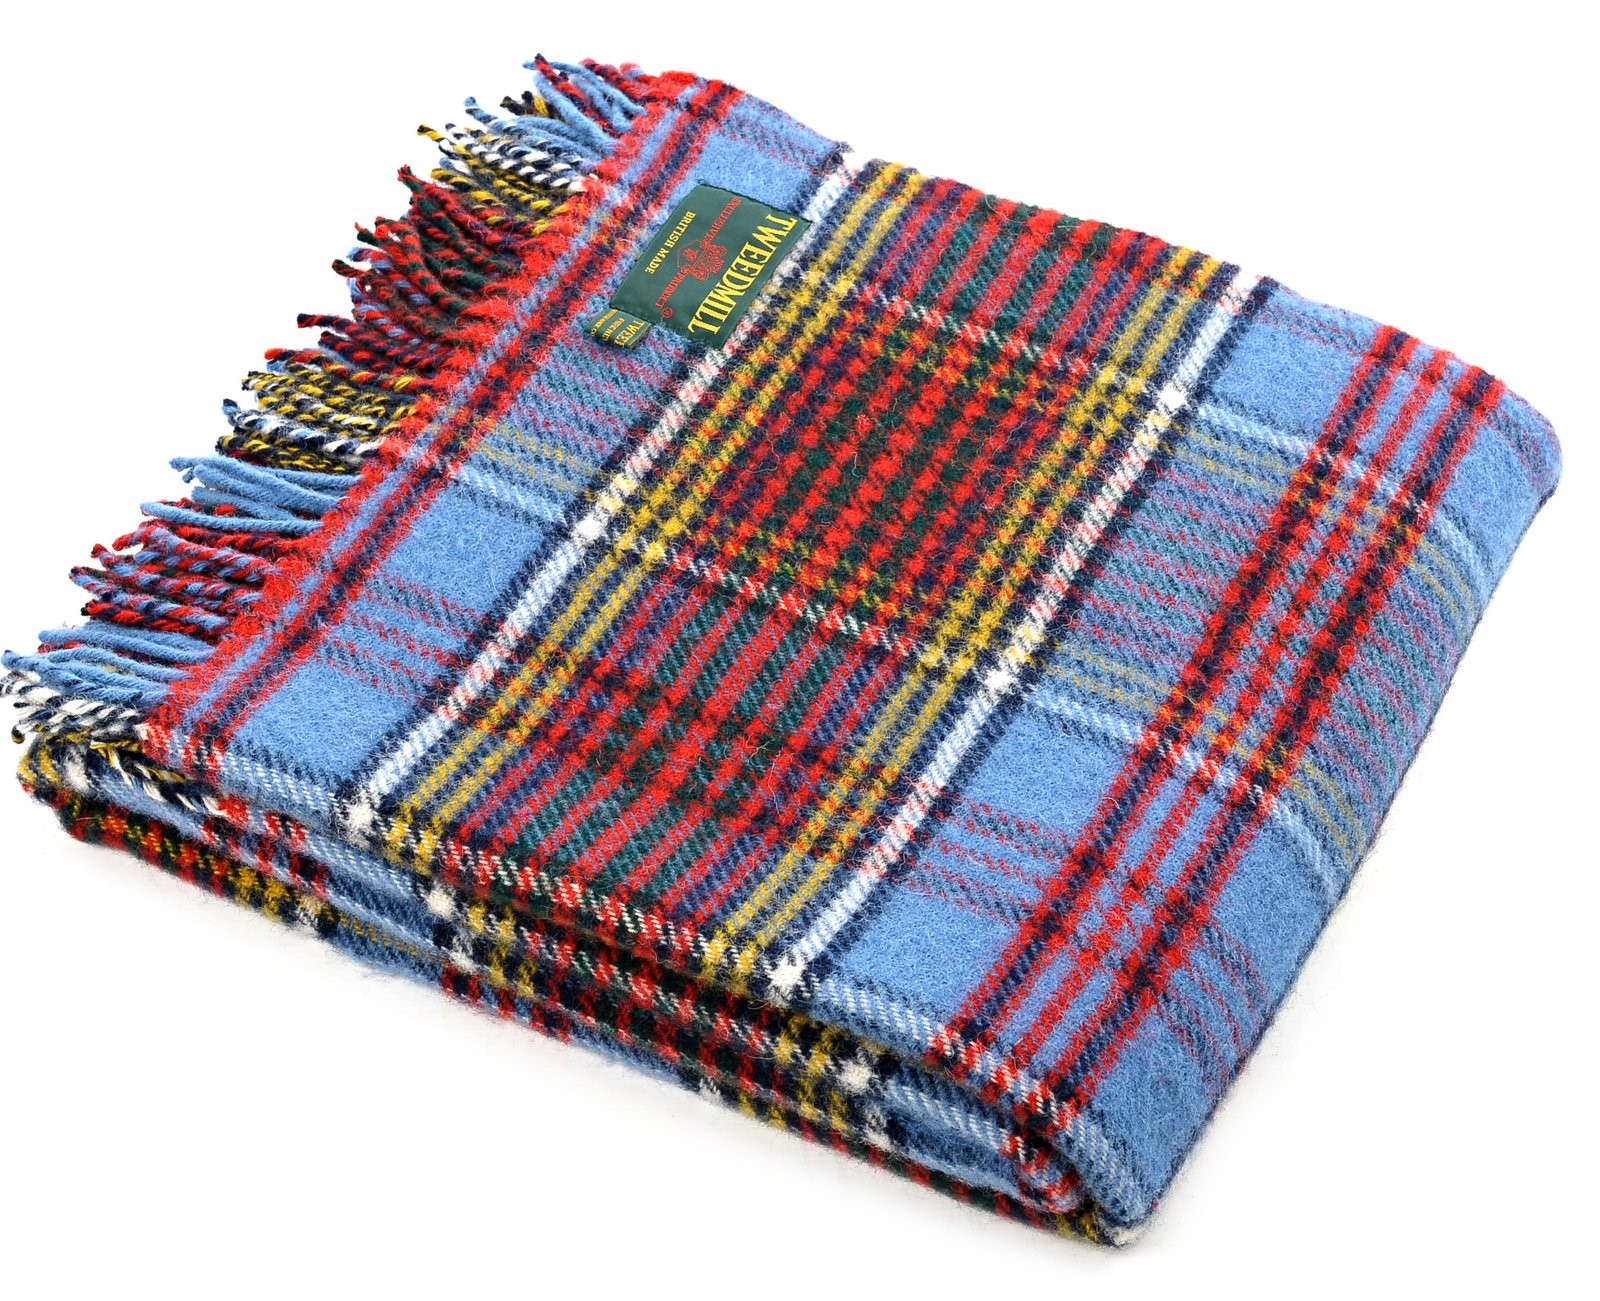 Wool Blanket Online British Made Gifts Anderson Tartan